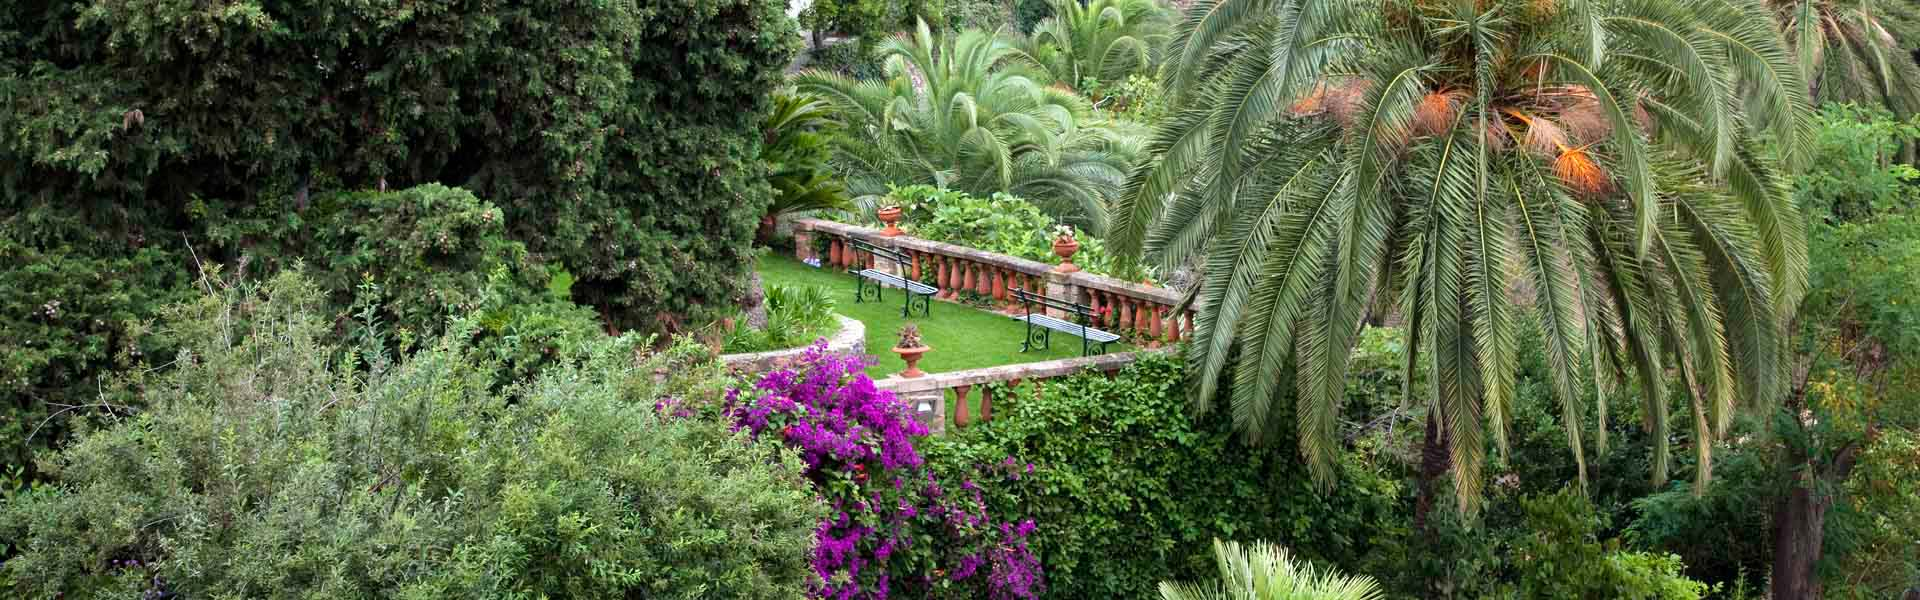 HISTORIC GARDEN IN LIGURE   Italy